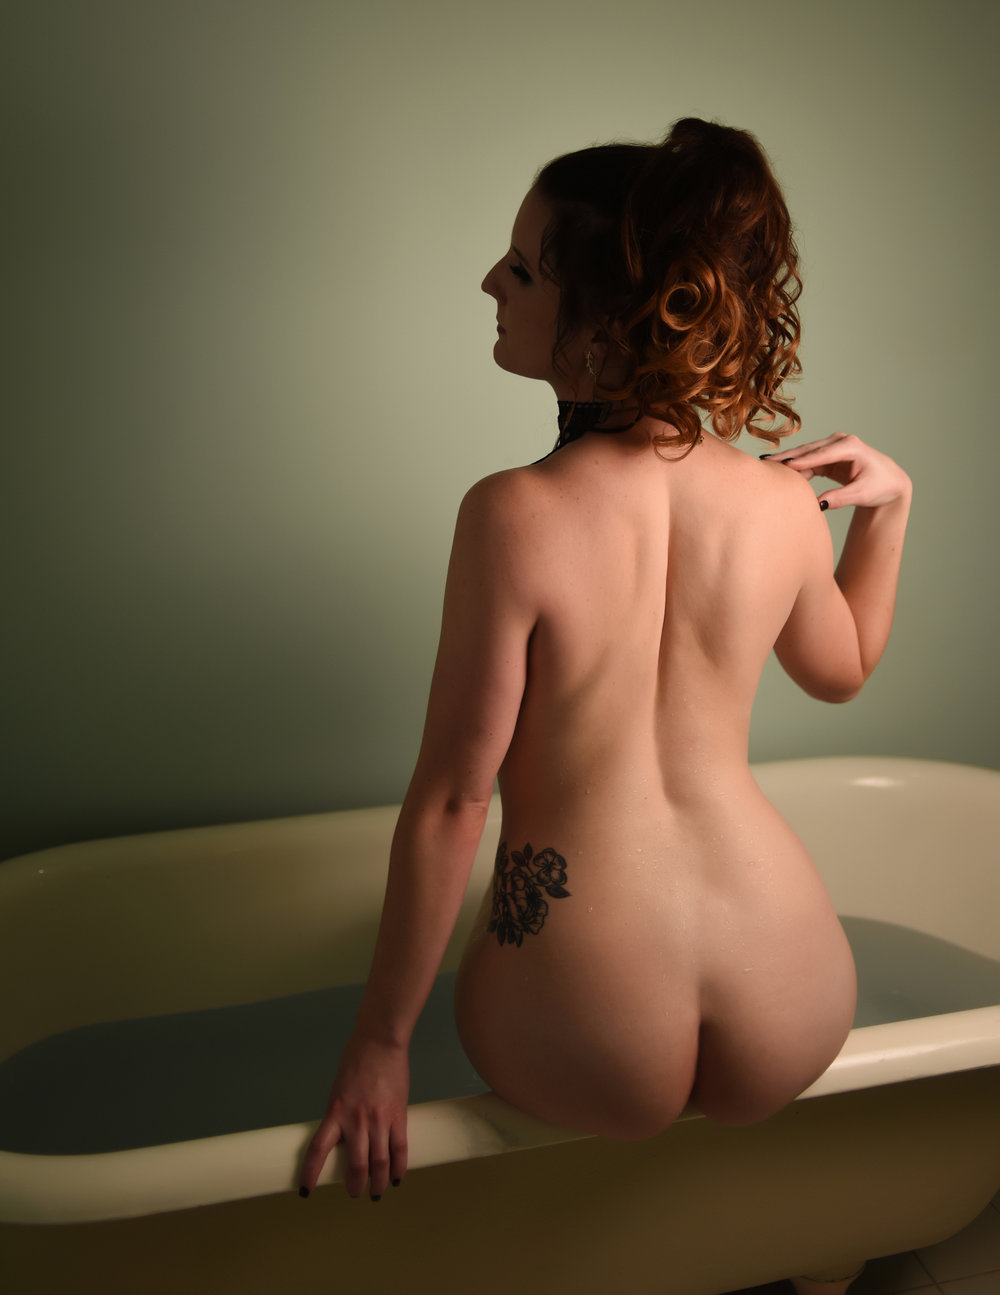 Bathtub Boudoir Photographer in Denver La Photographie 09.jpg